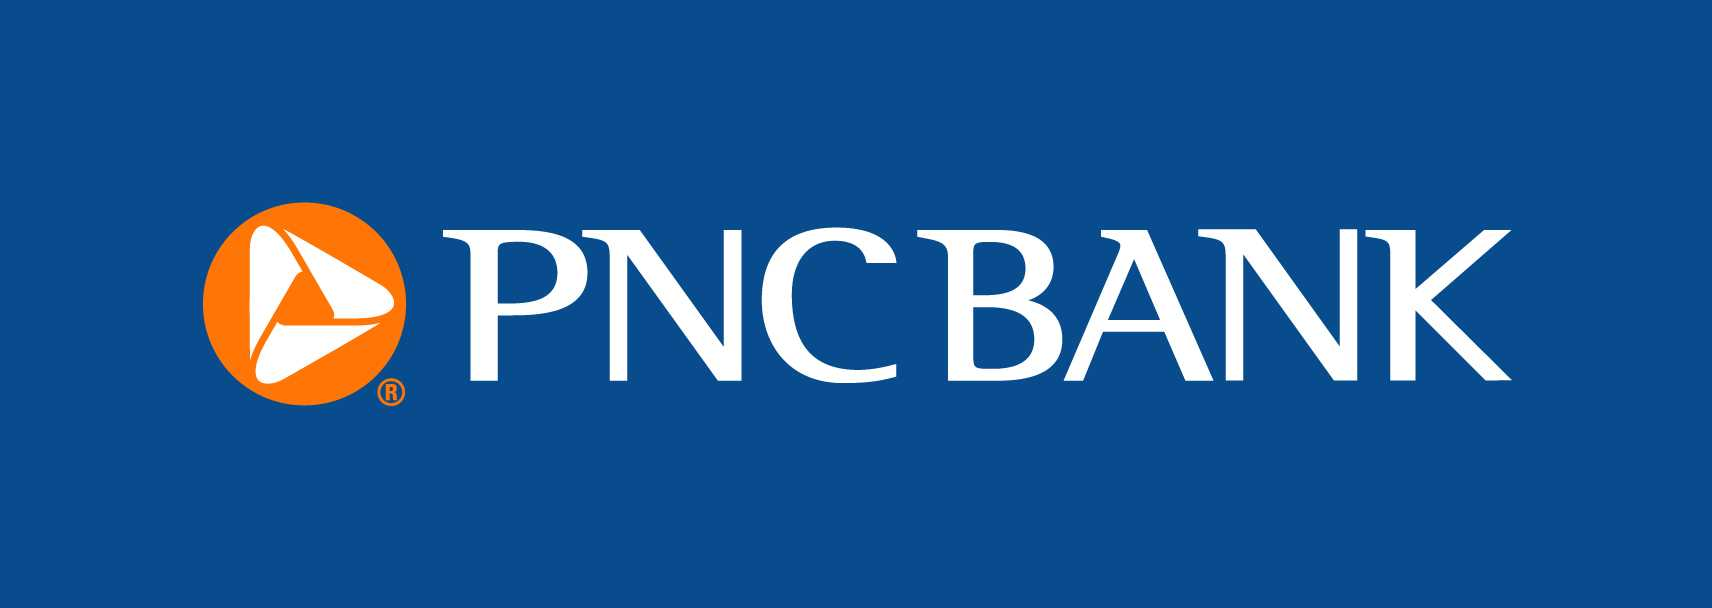 pnc customer service, pnc bank number